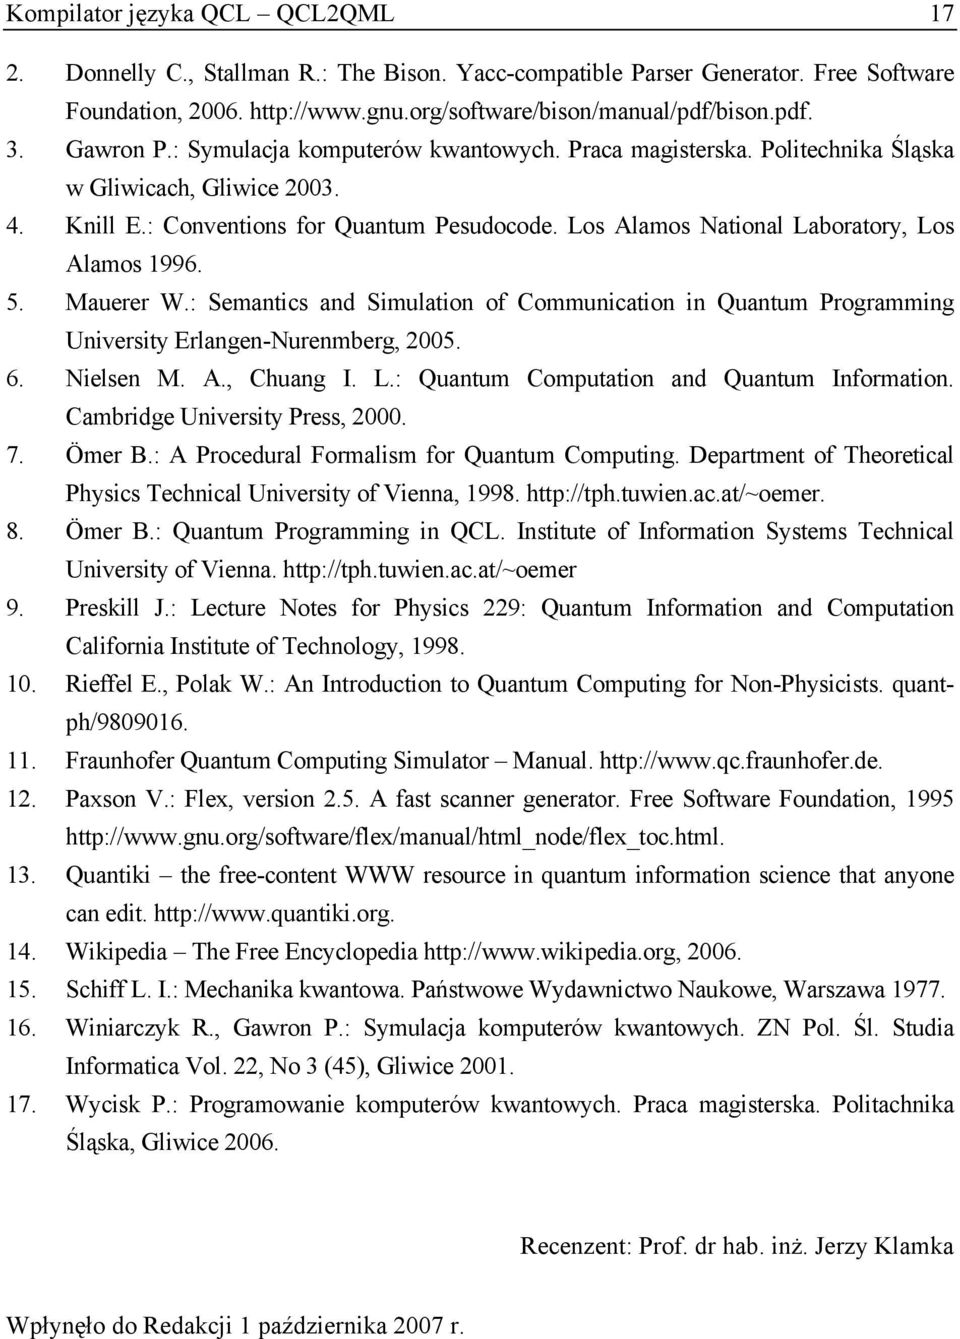 Los Alamos National Laboratory, Los Alamos 1996. 5. Mauerer W.: Semantics and Simulation of Communication in Quantum Programming University Erlangen-Nurenmberg, 2005. 6. Nielsen M. A., Chuang I. L.: Quantum Computation and Quantum Information.